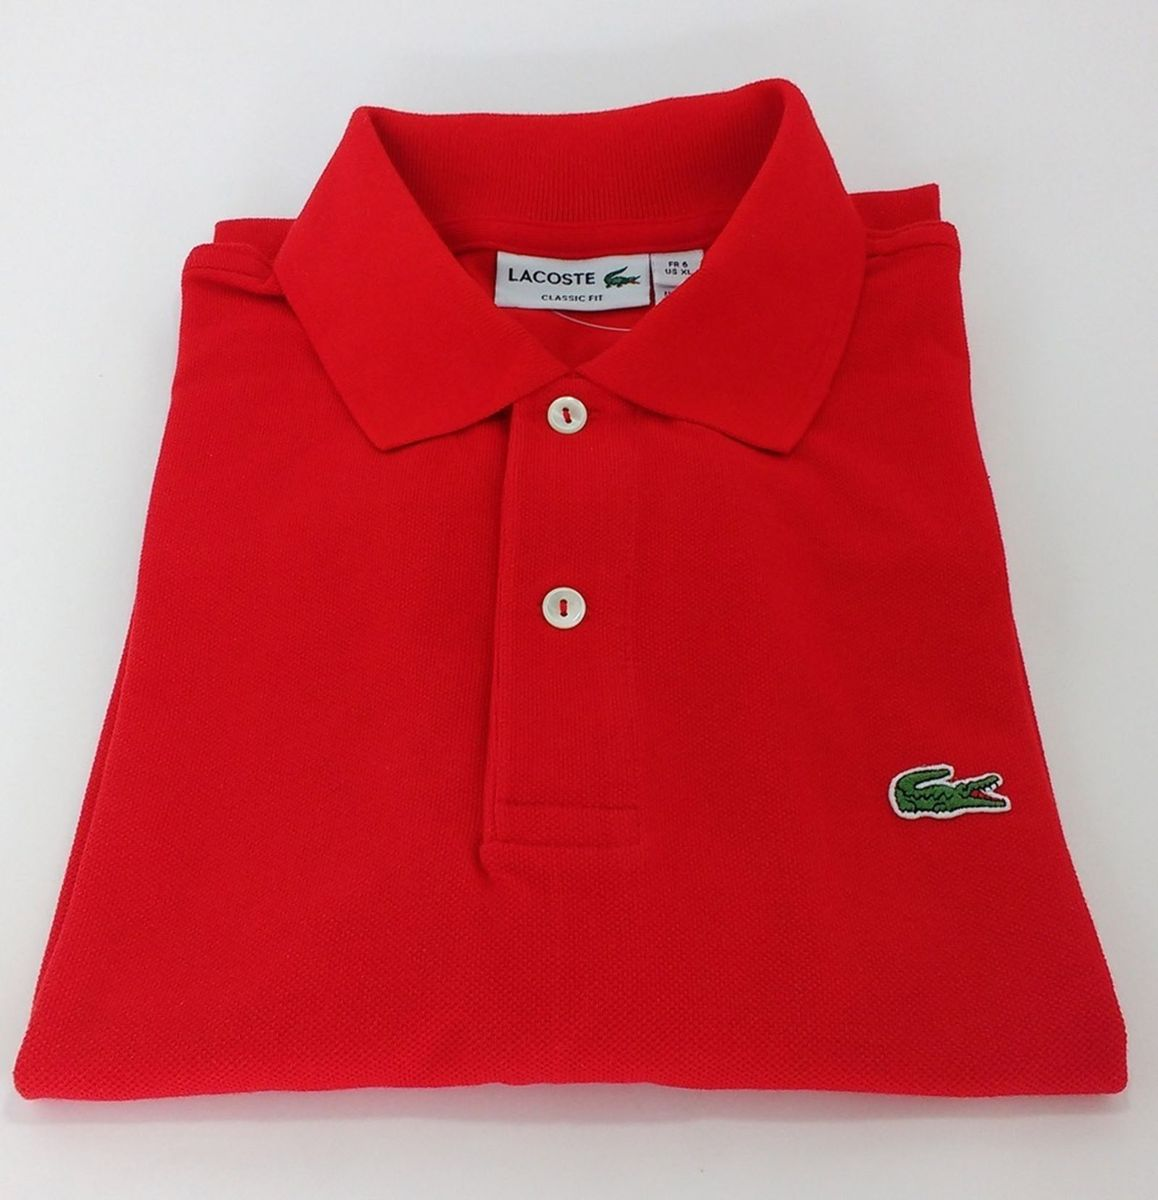 c2dfff2da28 camisa polo lacoste masculina tamanho g - camisas lacoste